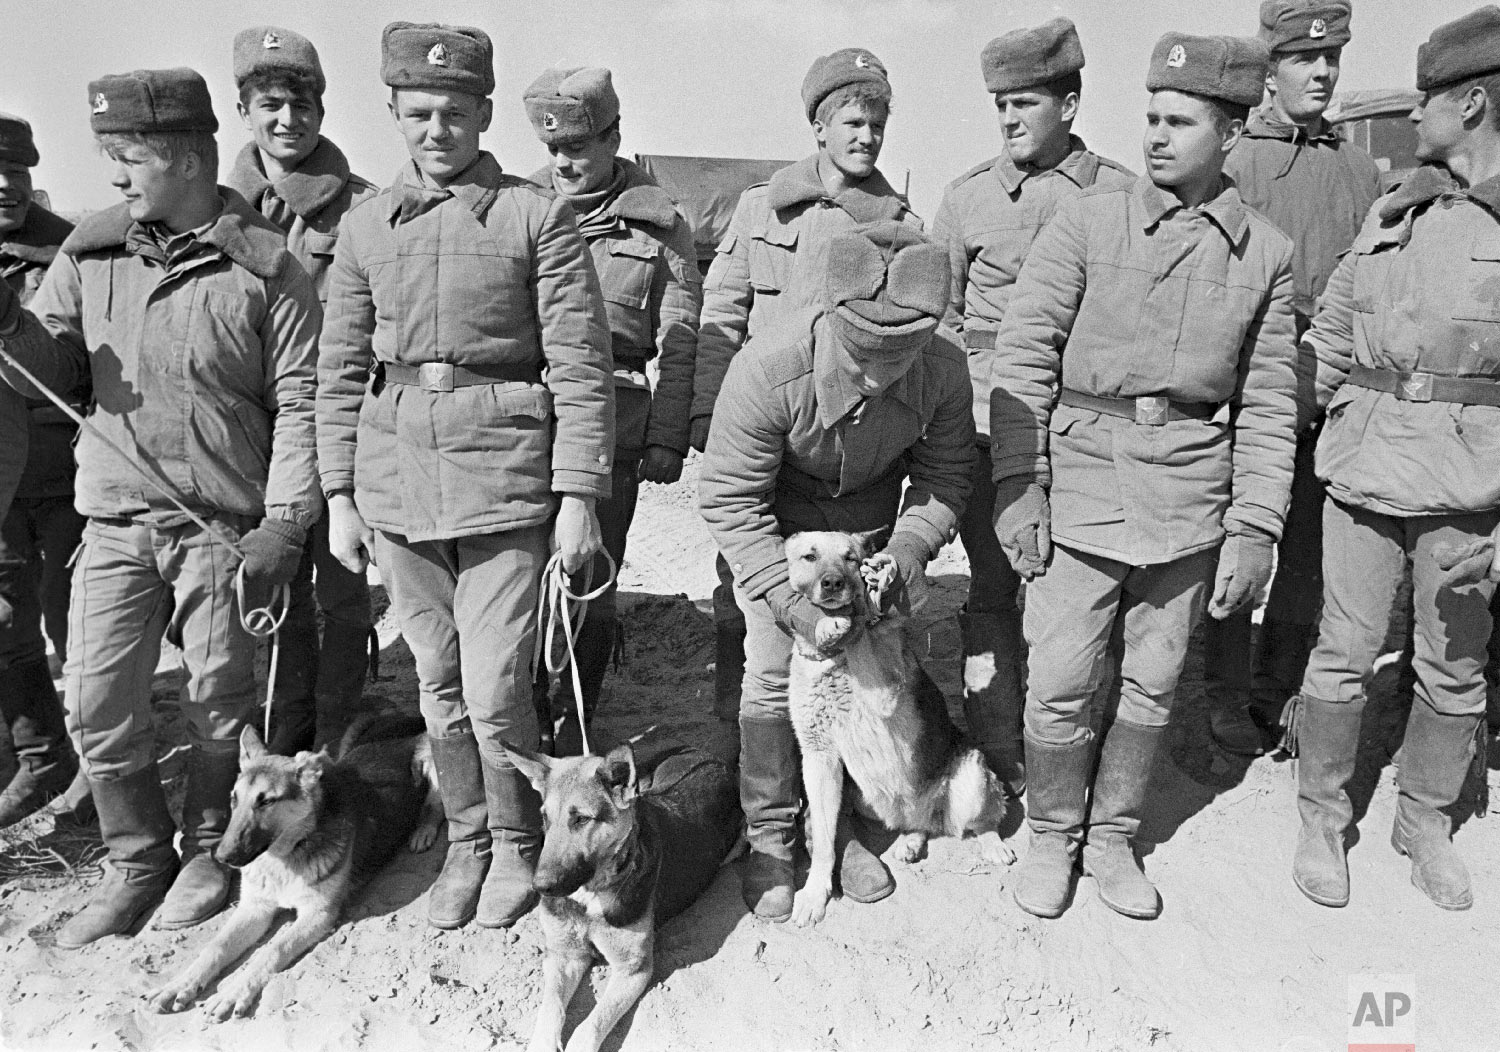 Soviet Army soldiers with their war-dogs line up after their unit crossed a bridge on the border between Afghanistan and then Soviet Uzbekistan near the Uzbek town of Termez, Uzbekistan on Feb. 15, 1989. (AP Photo/Alexander Zemlianichenko)